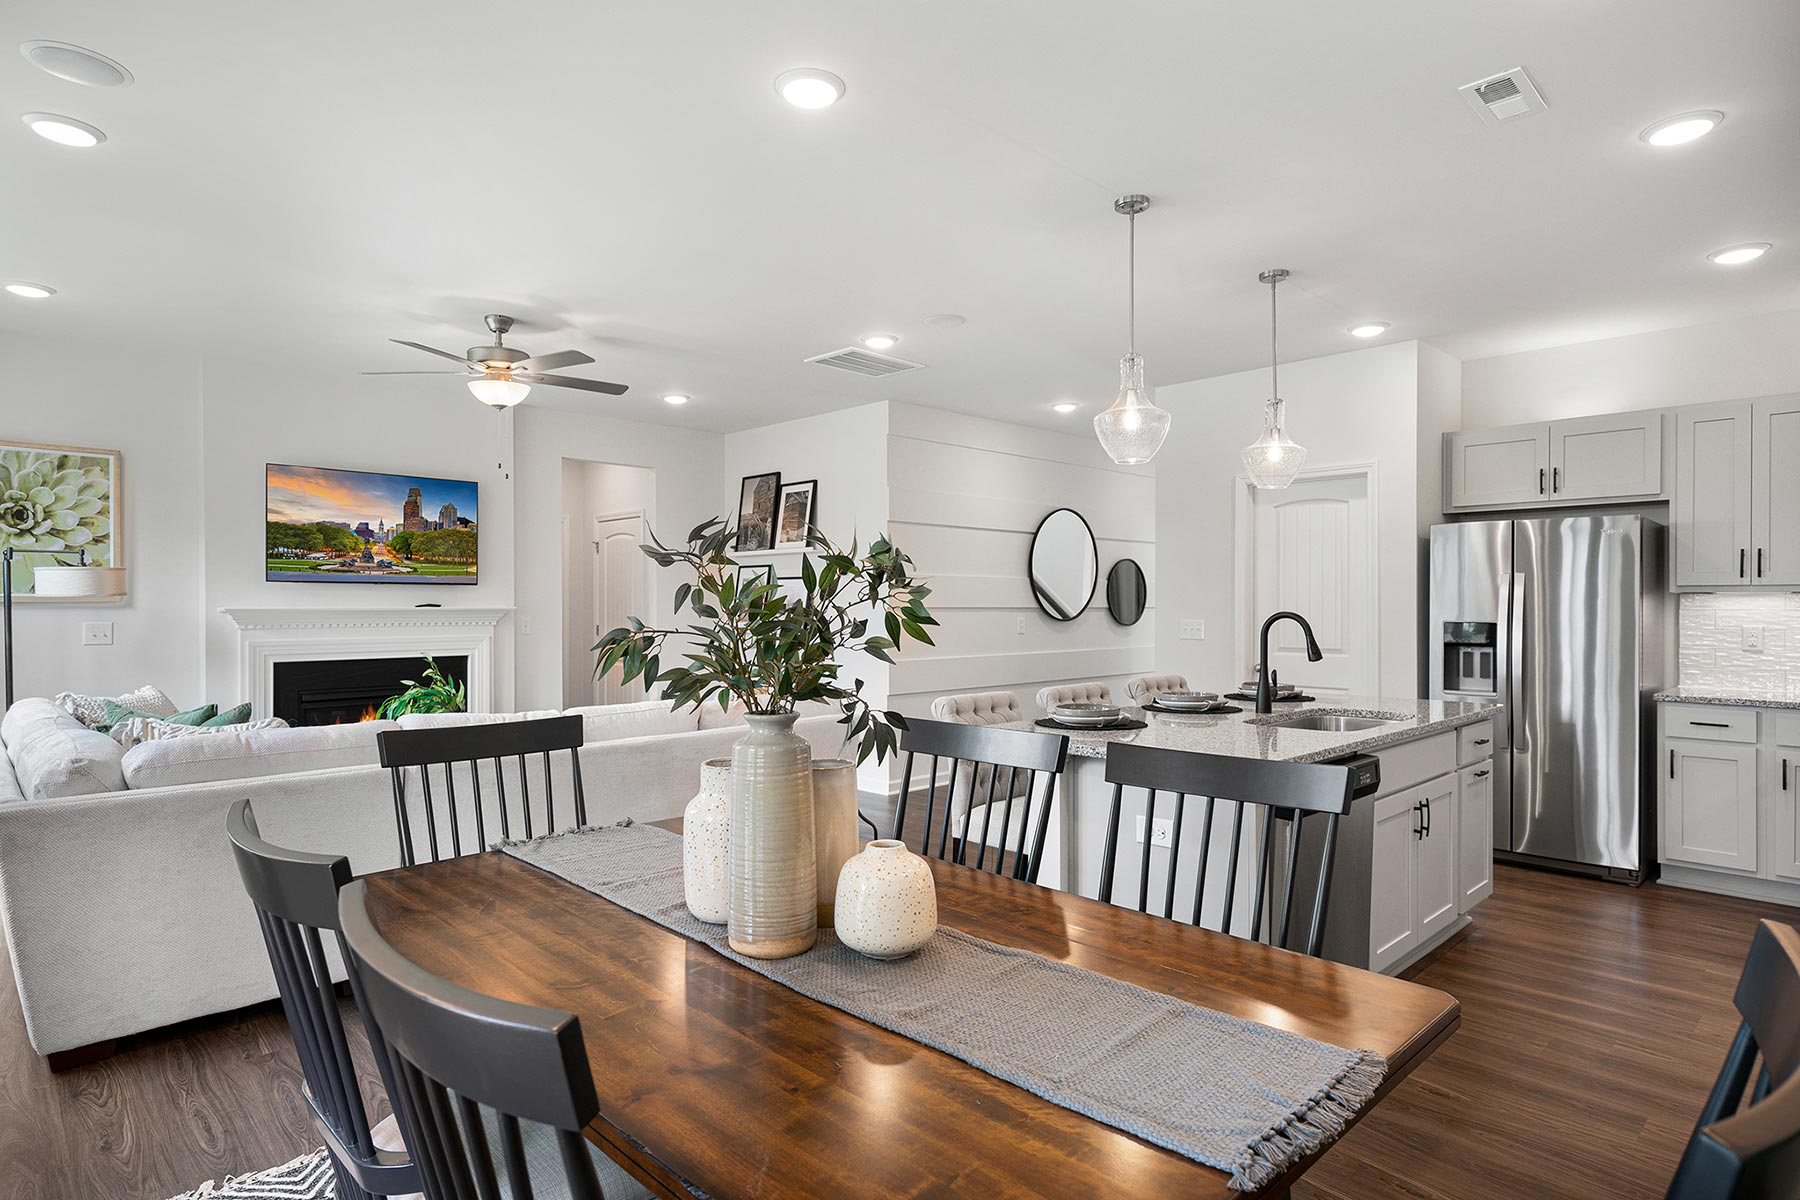 Gaines Plan Greatroom at Briar Gate in Fuquay-Varina North Carolina by Mattamy Homes